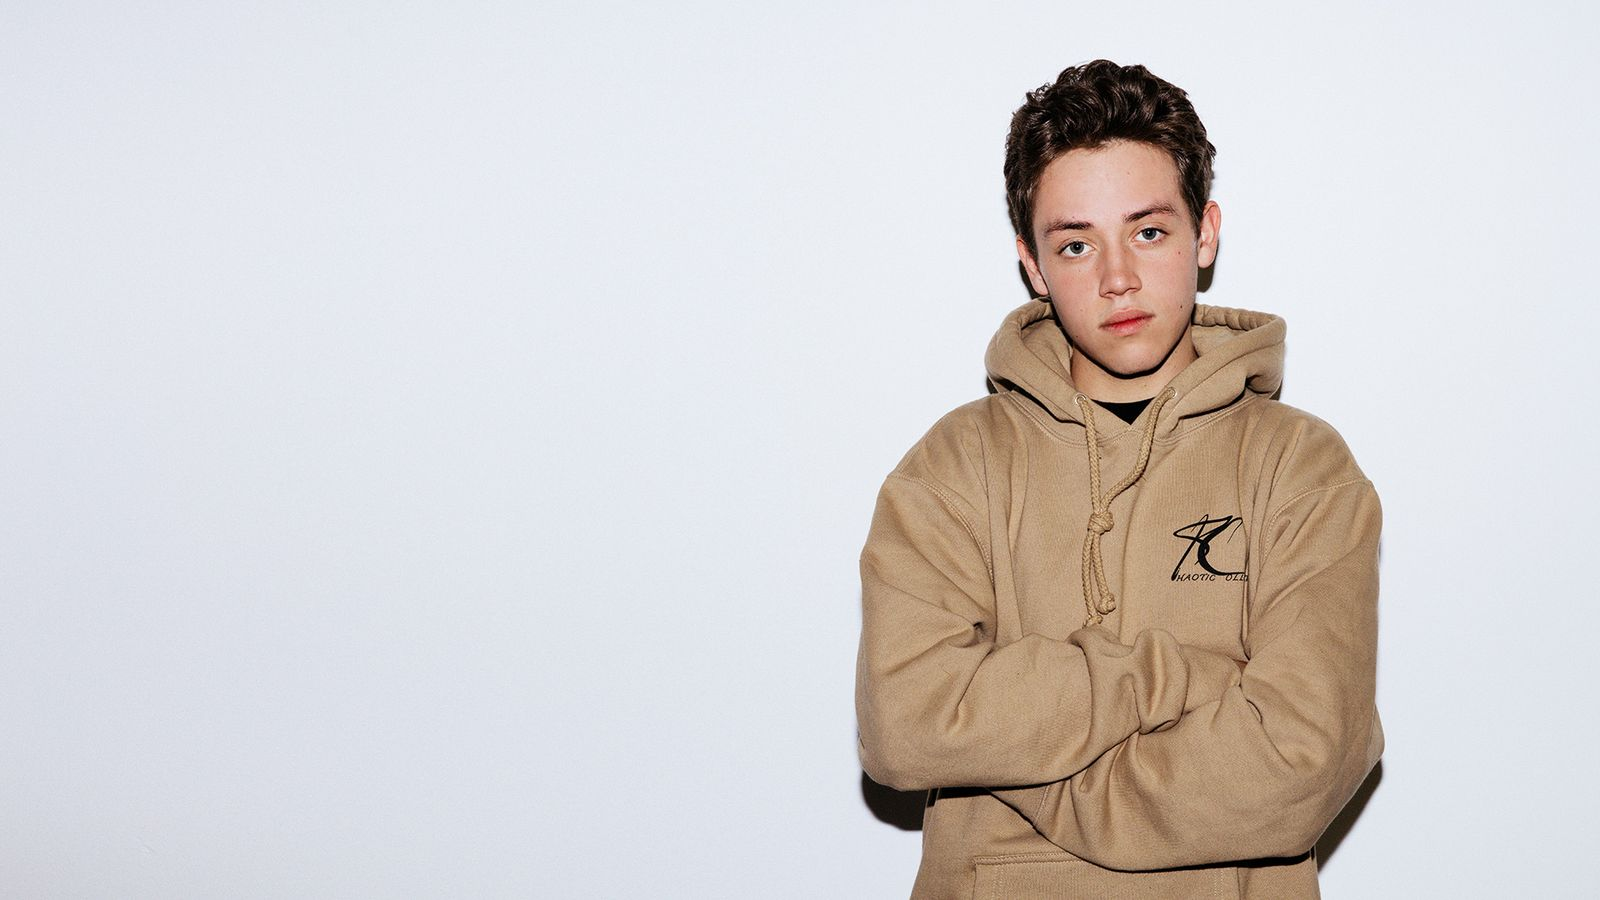 Ethan Cutkowsky Thomas Welch Highsnobiety Khaotic Collective Mike Cherman chinatown market